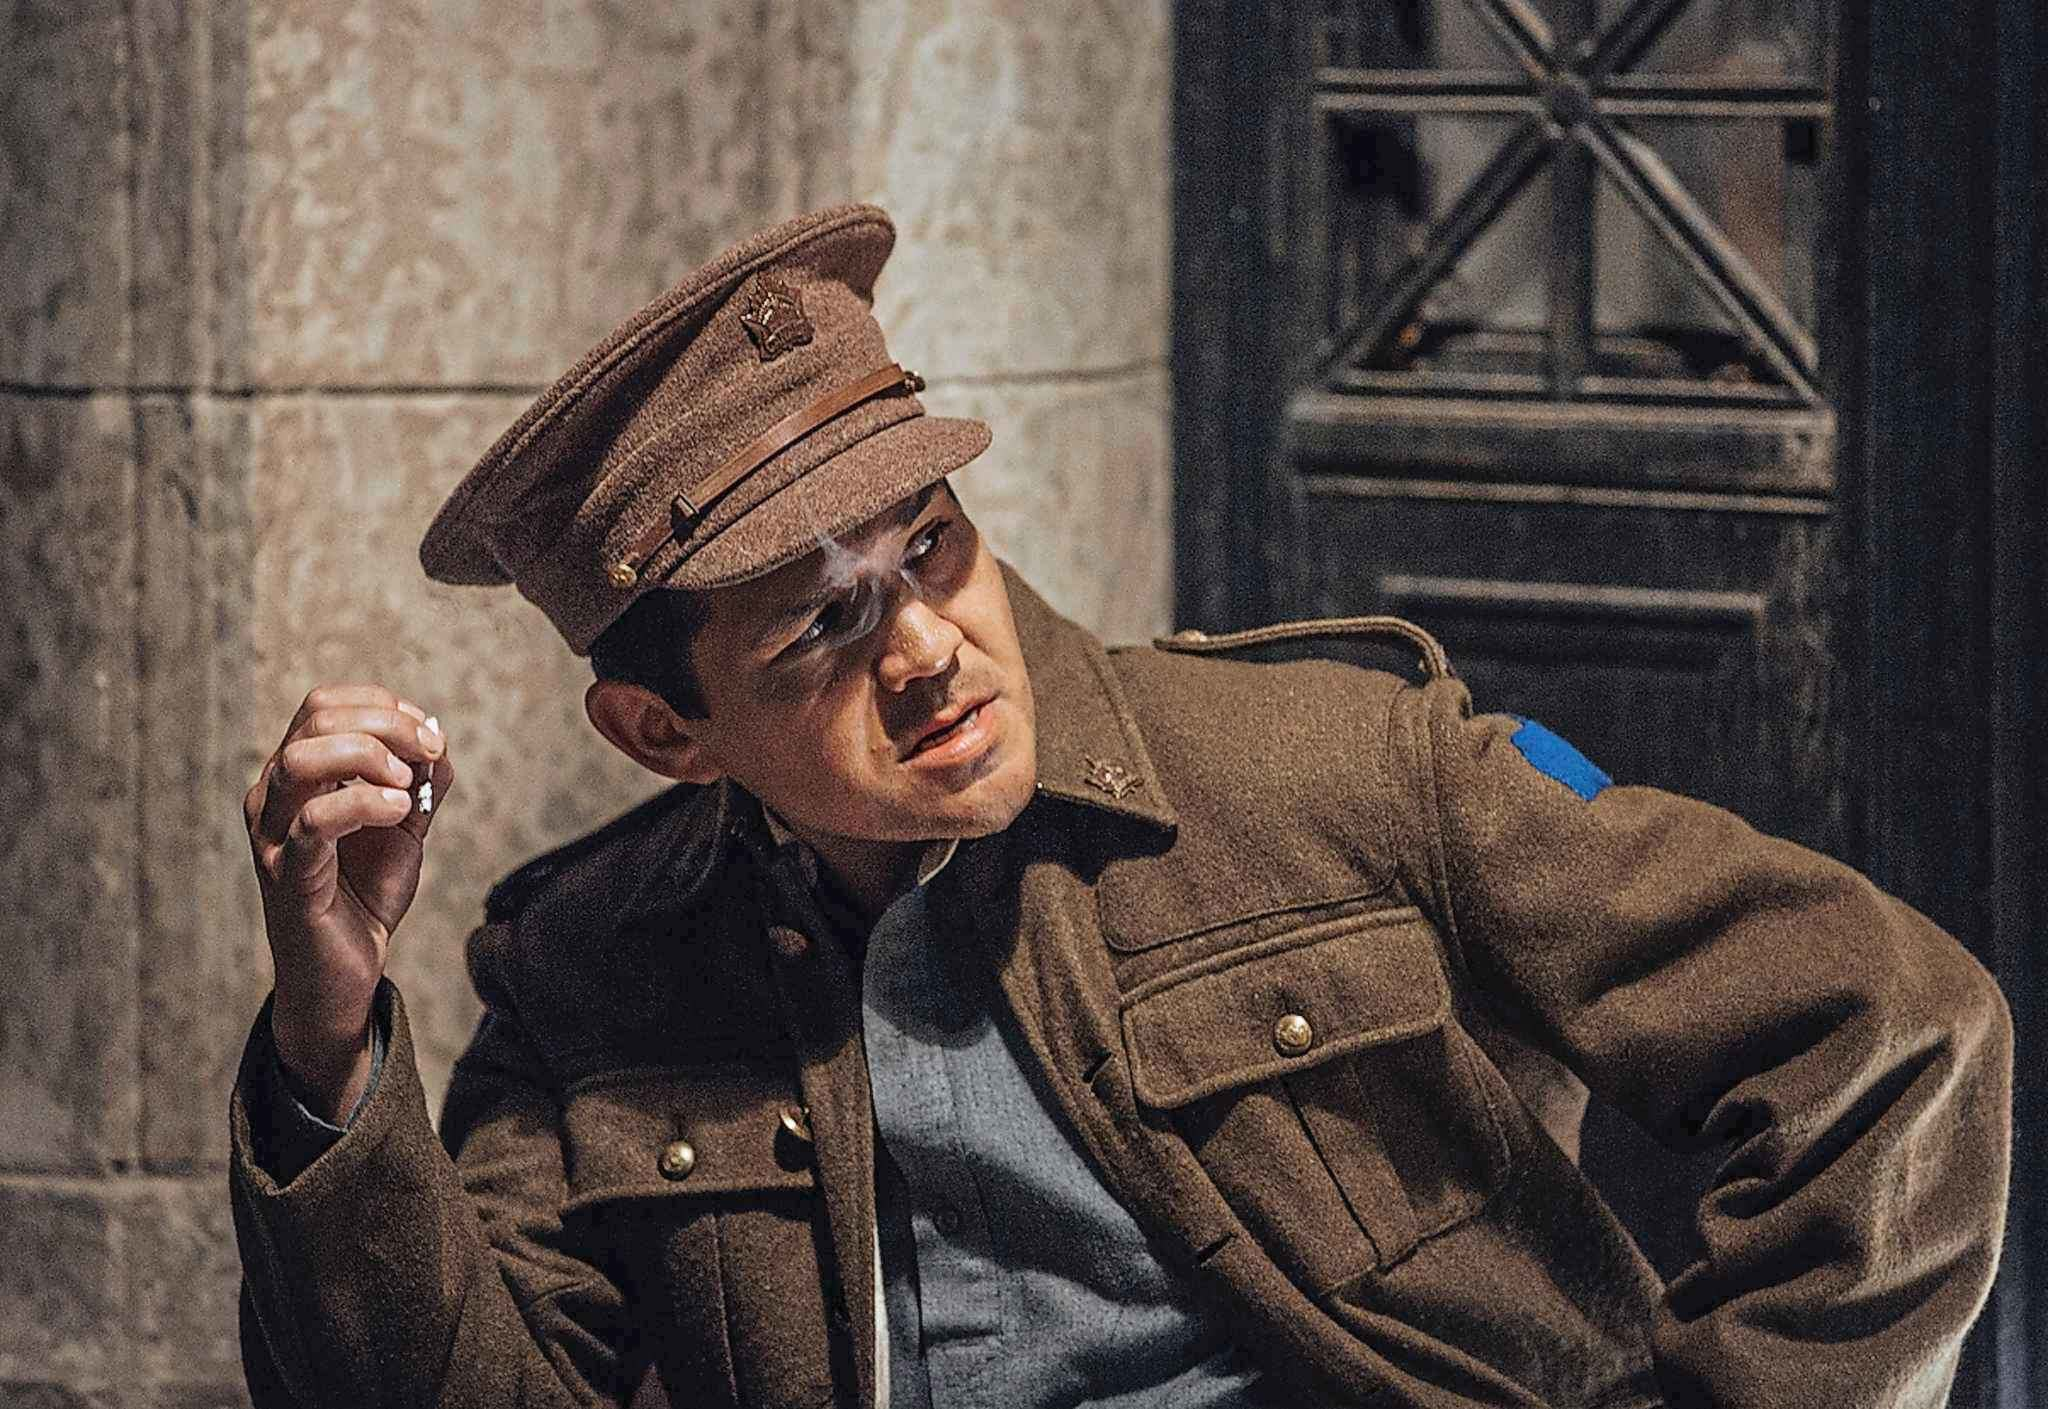 Métis actor Gabriel Daniels stars in Stand! The international movie-musical is set during the 1919 Winnipeg General Strike and is based on the Danny Schur-Rick Chafe stage musical Strike!